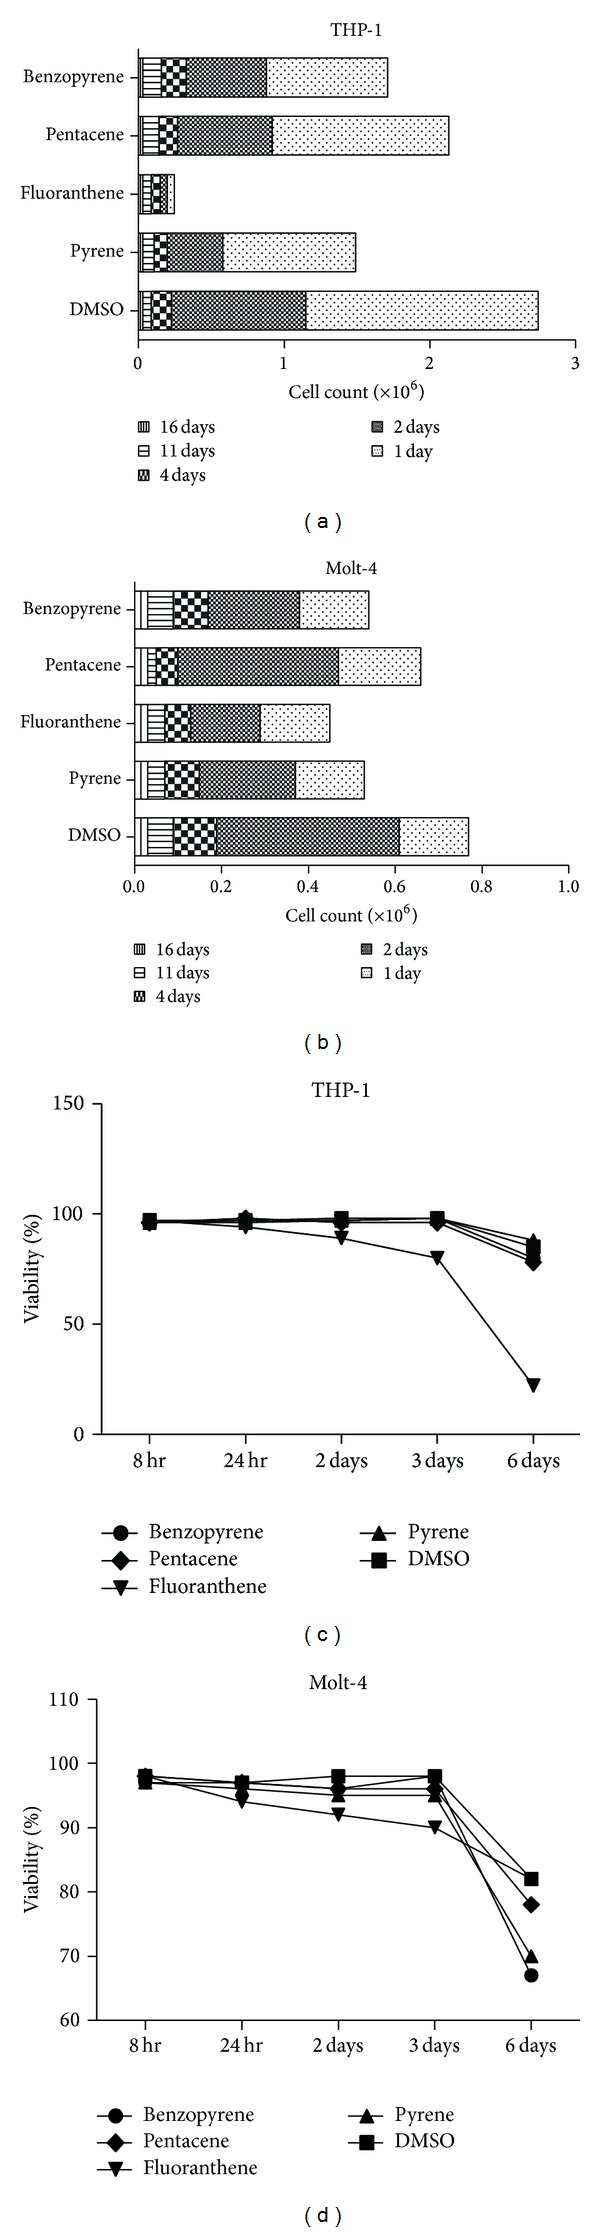 The change of cell count and viability after PAHs exposure in THP-1 and Molt-4 cell line. Depending on the type of PAHs, each cell count showed different aspects. In comparison to DMSO treated (0.1%) group, fluoranthene displayed profound significant reduction in cell count, especially in THP-1 and Molt-4 cell line ((a) and (b)). Viability was significantly decreased after fluoranthene exposure for two days. On the third day of PAHs exposure, viability was reduced remarkably in both cell lines ((c) and (d)).